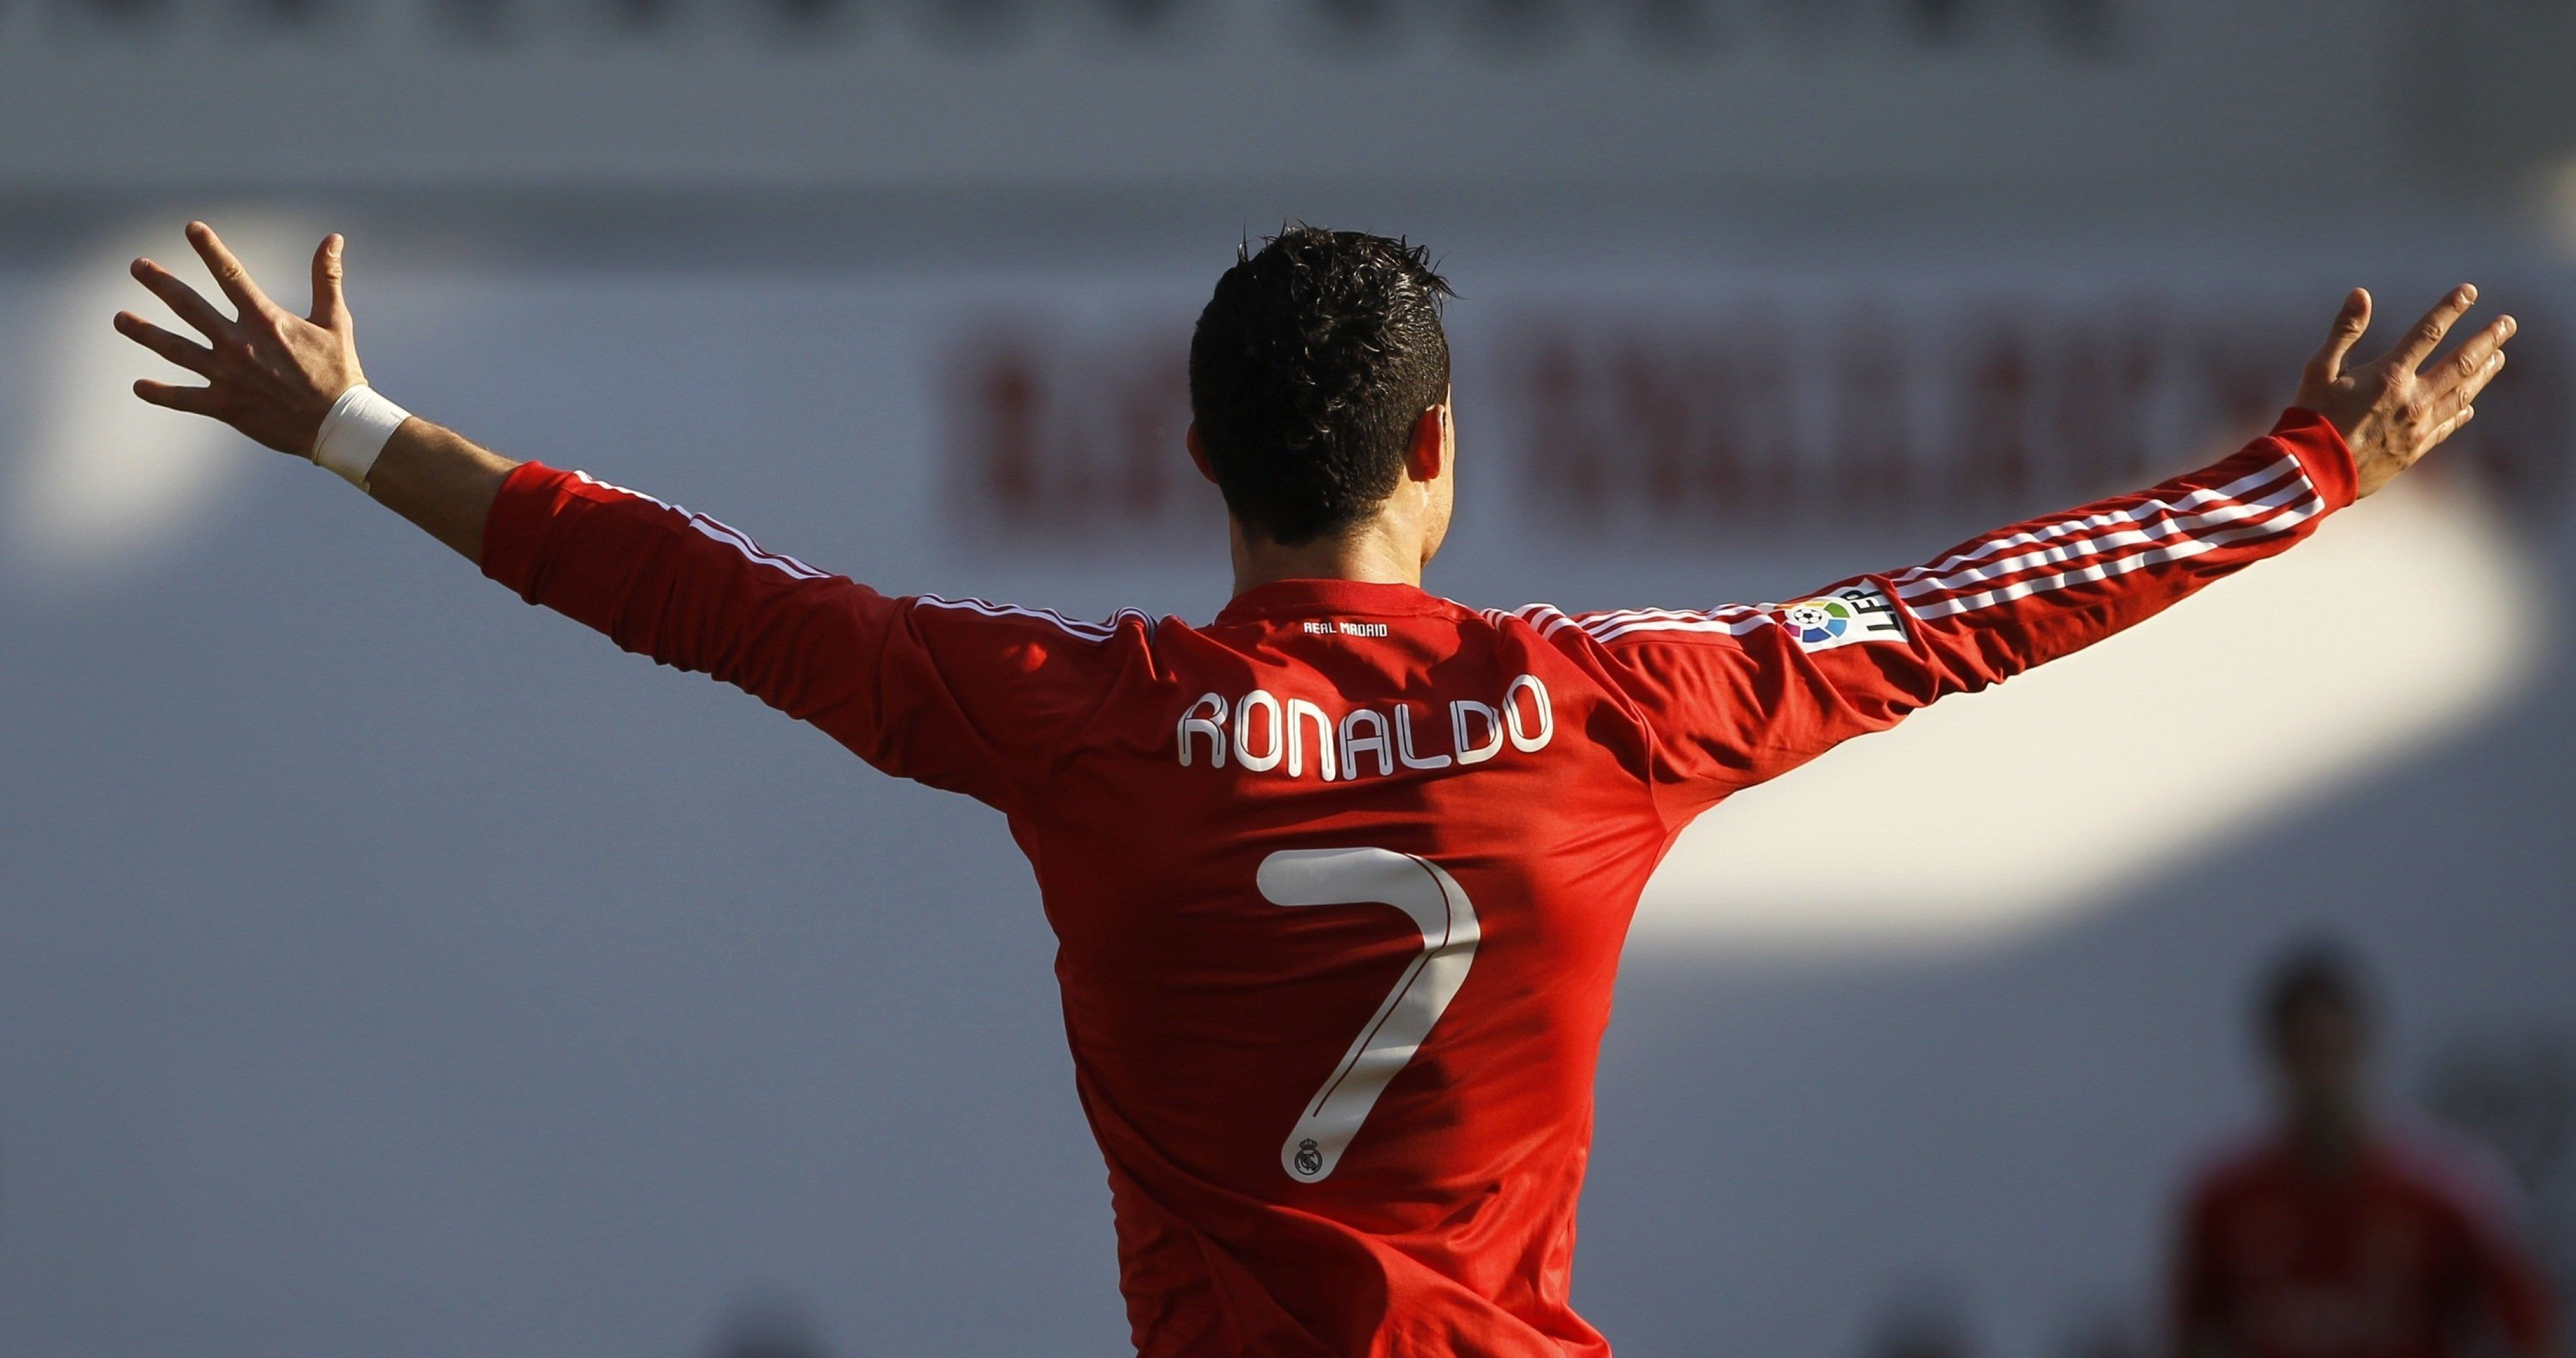 cristiano ronaldo soccer player 4k ultra hd wallpaper